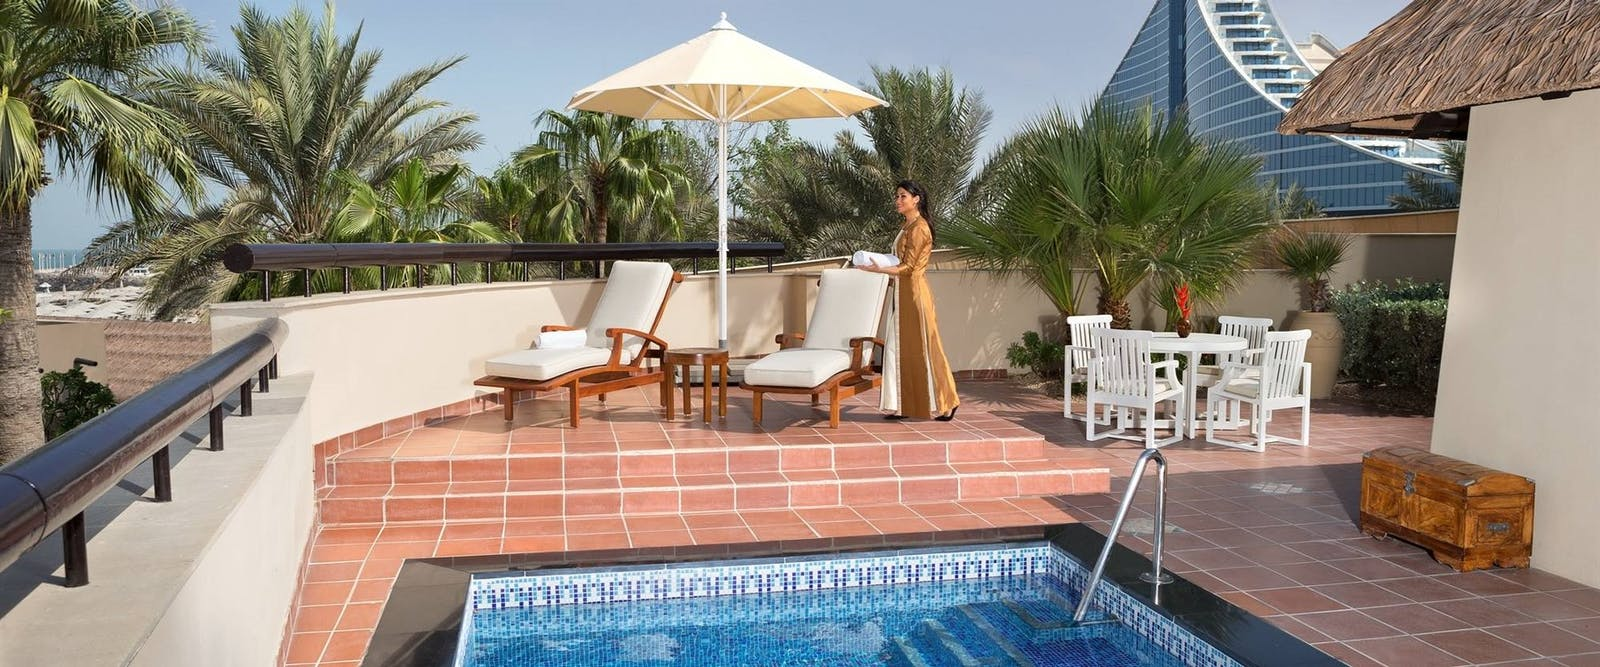 One Bedroom Royal Villa Terrace Day Shot at at Beit Al Bahar Villas, Jumeirah Beach Hotel, Dubai